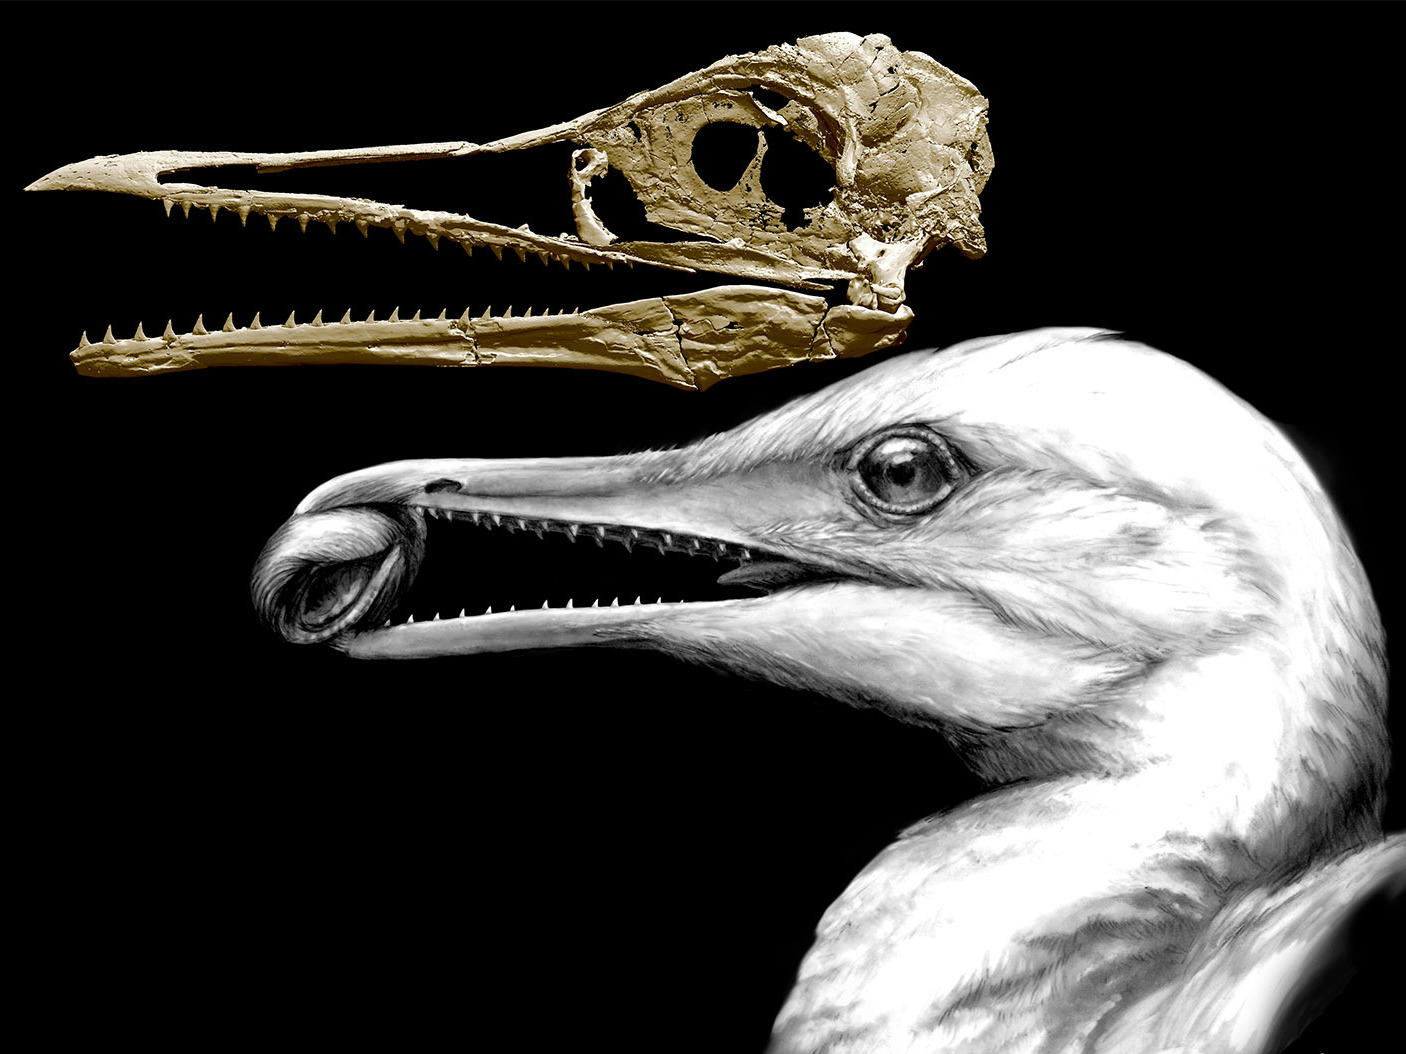 First birds had tooth-lined beaks, study reveals